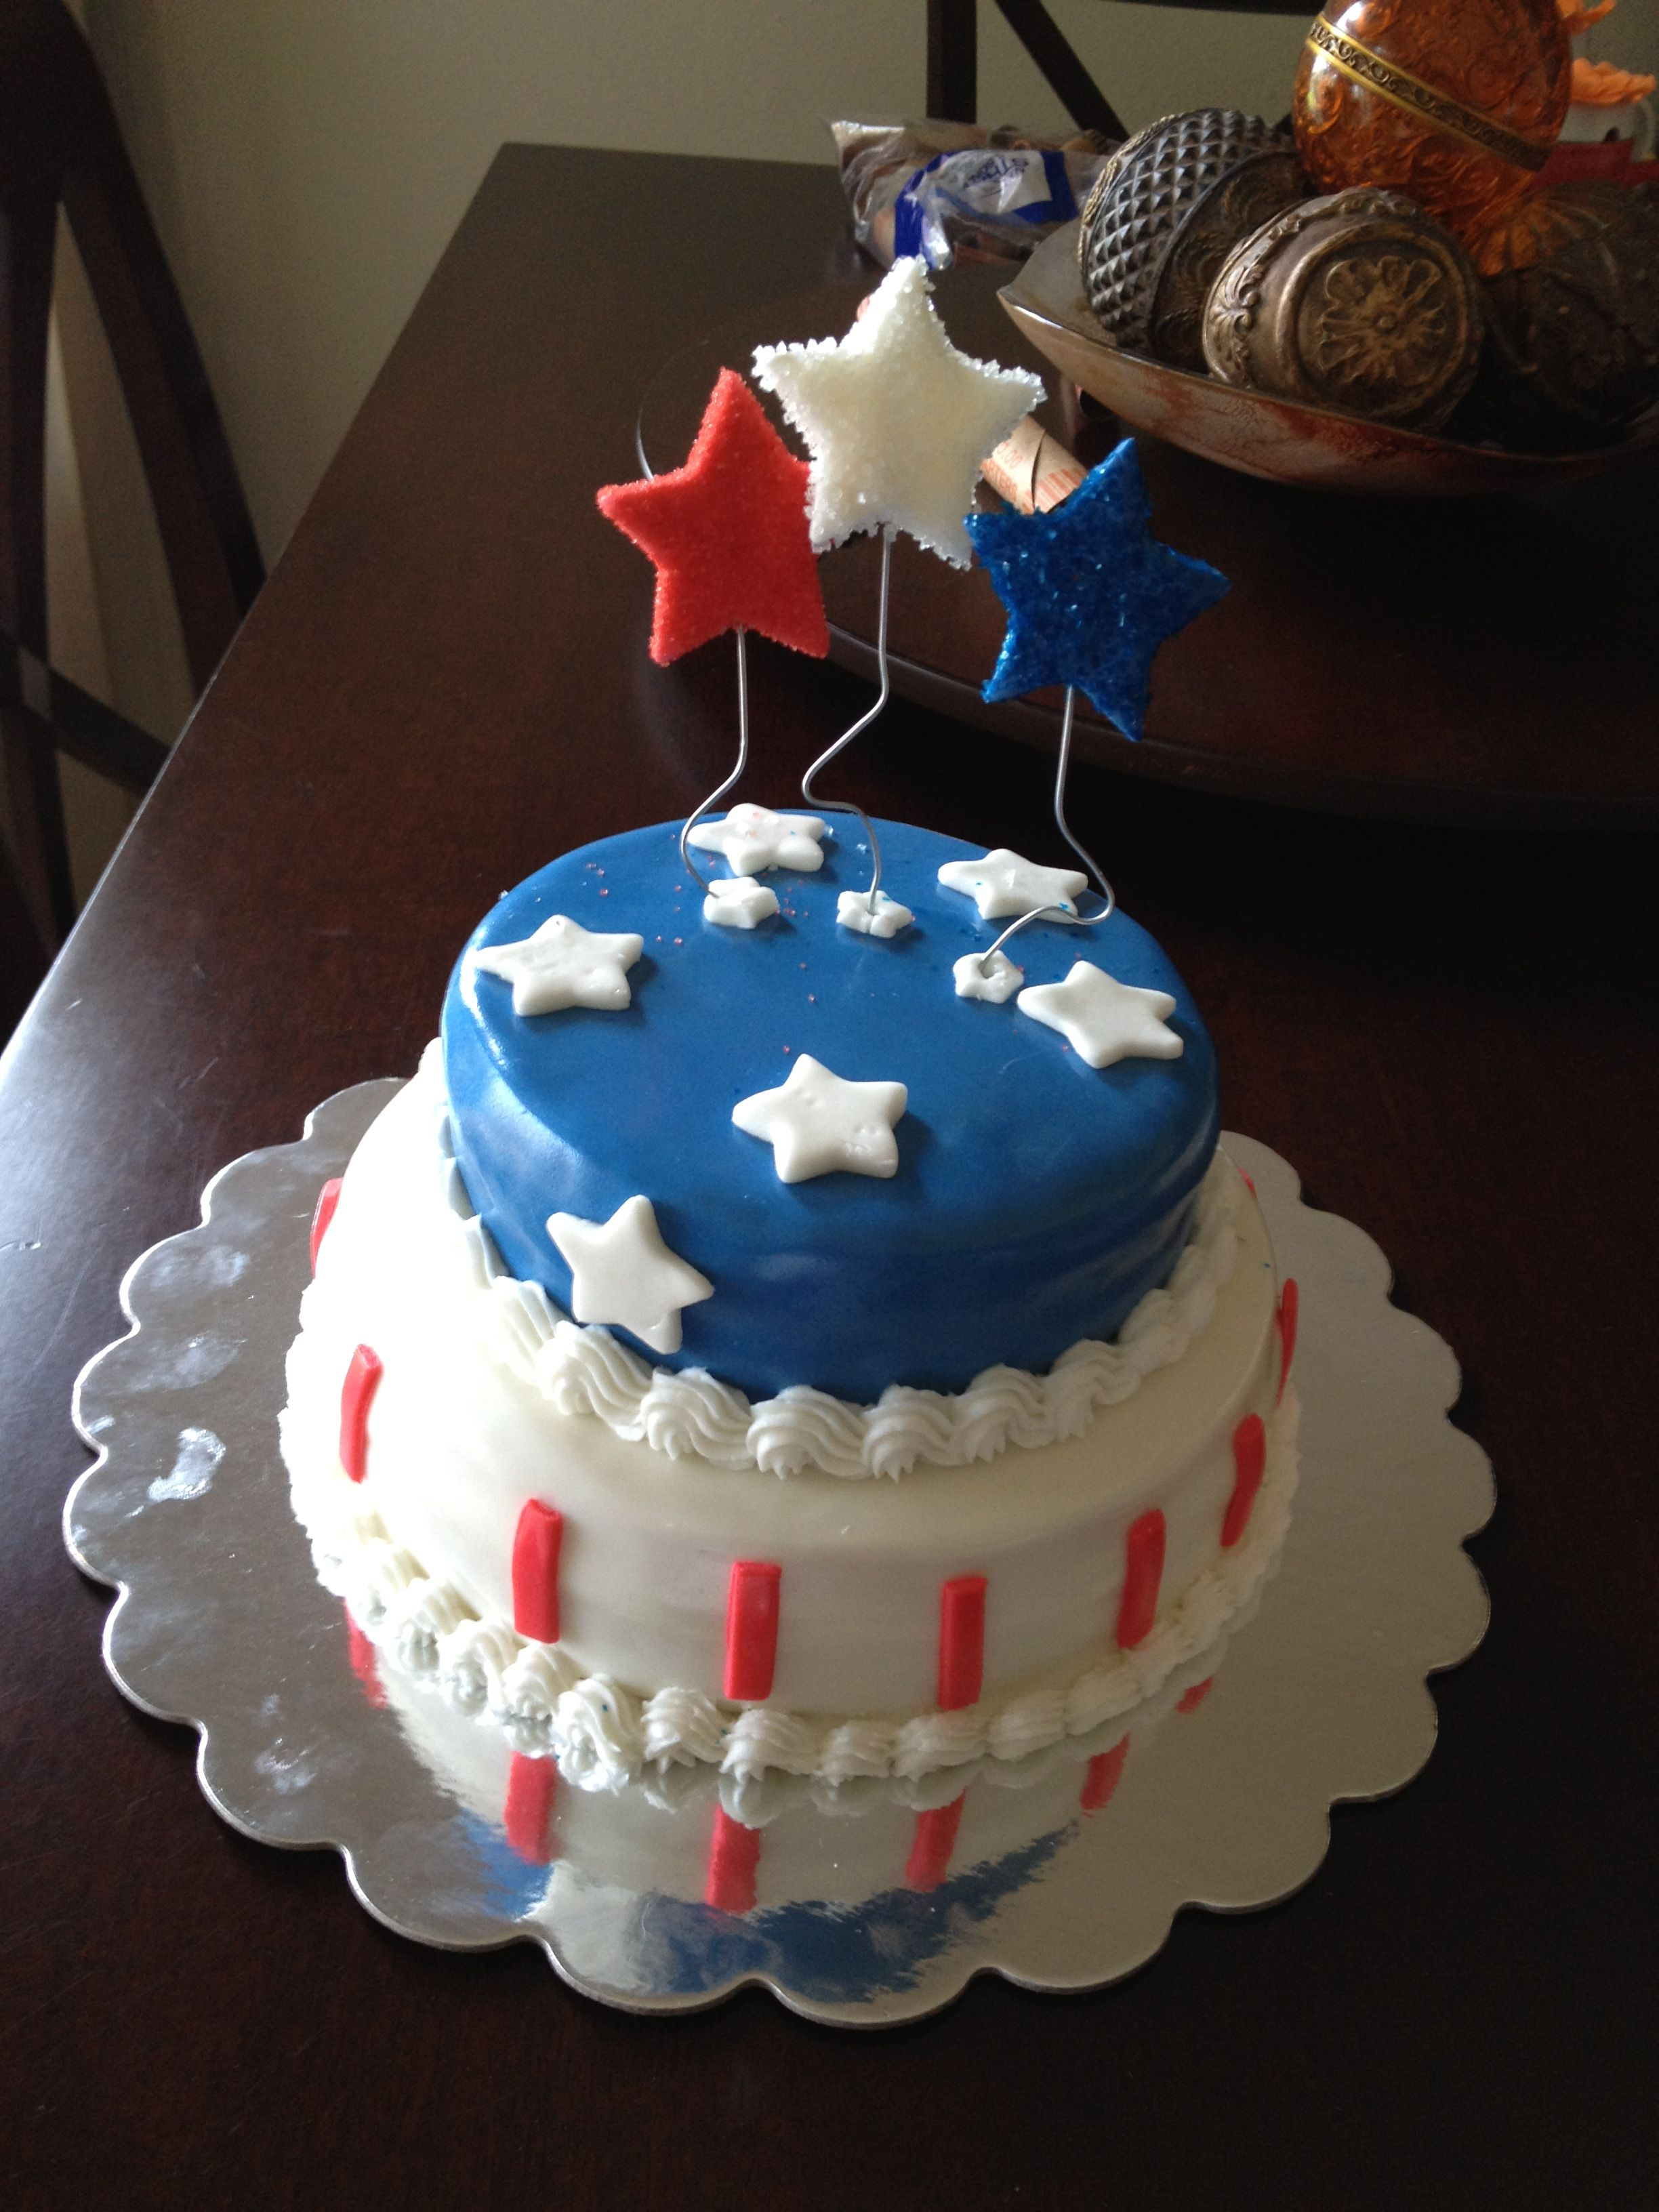 Cake Decorating Ideas For Labor Day : Labor day cake. Cute cake Ideas Pinterest